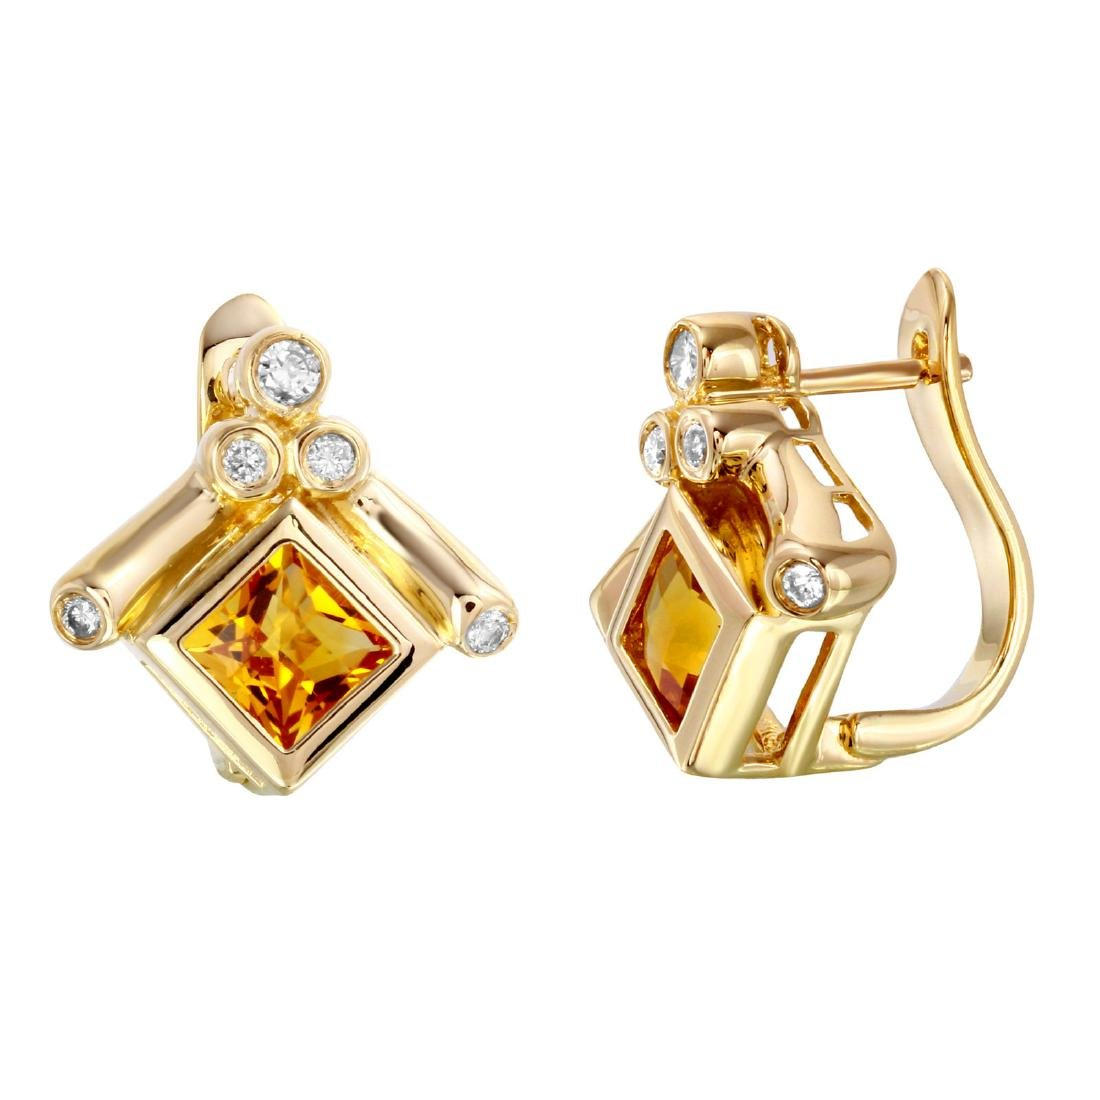 14KT Yellow Gold Citrine & Diamond Earrings - 4